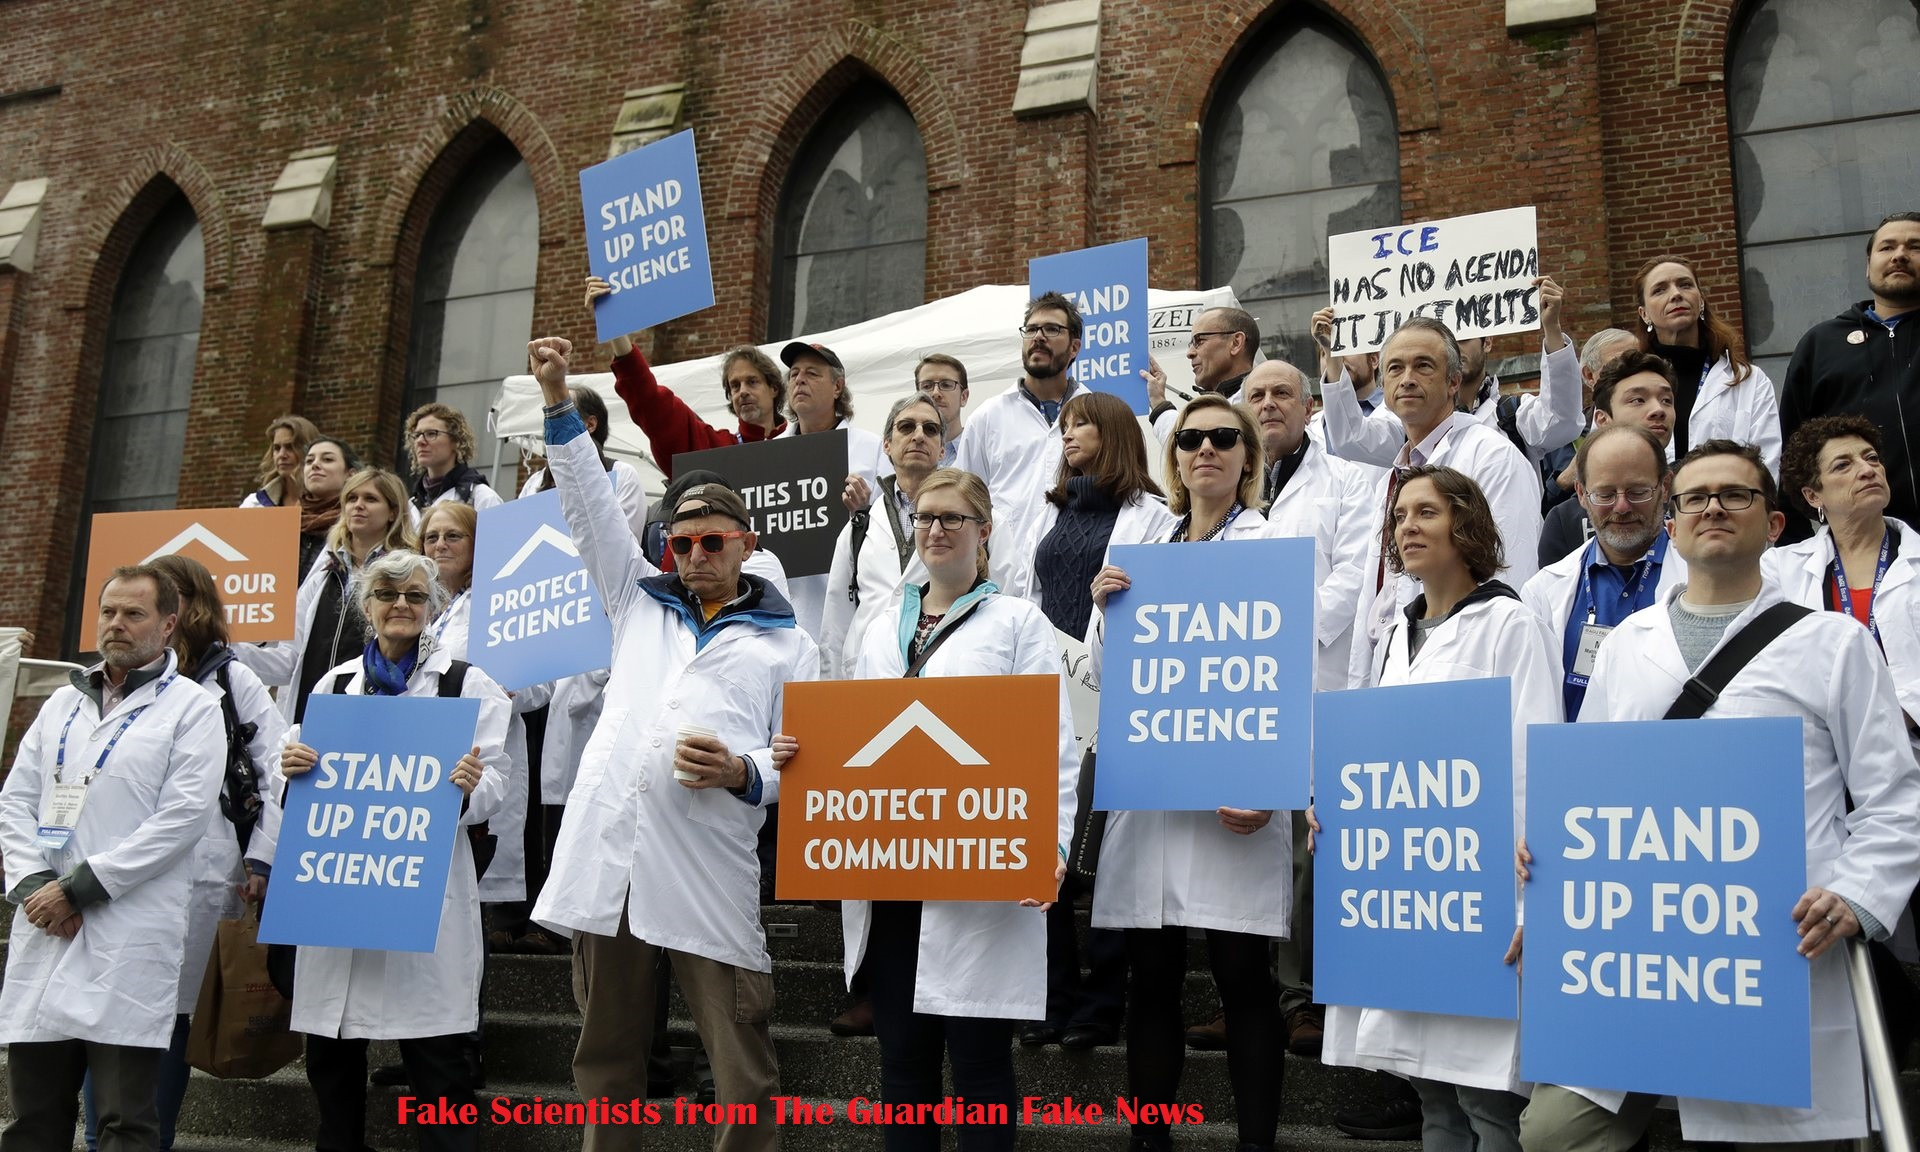 Fake news photo in The Guardian shows fake scientists in lab coats